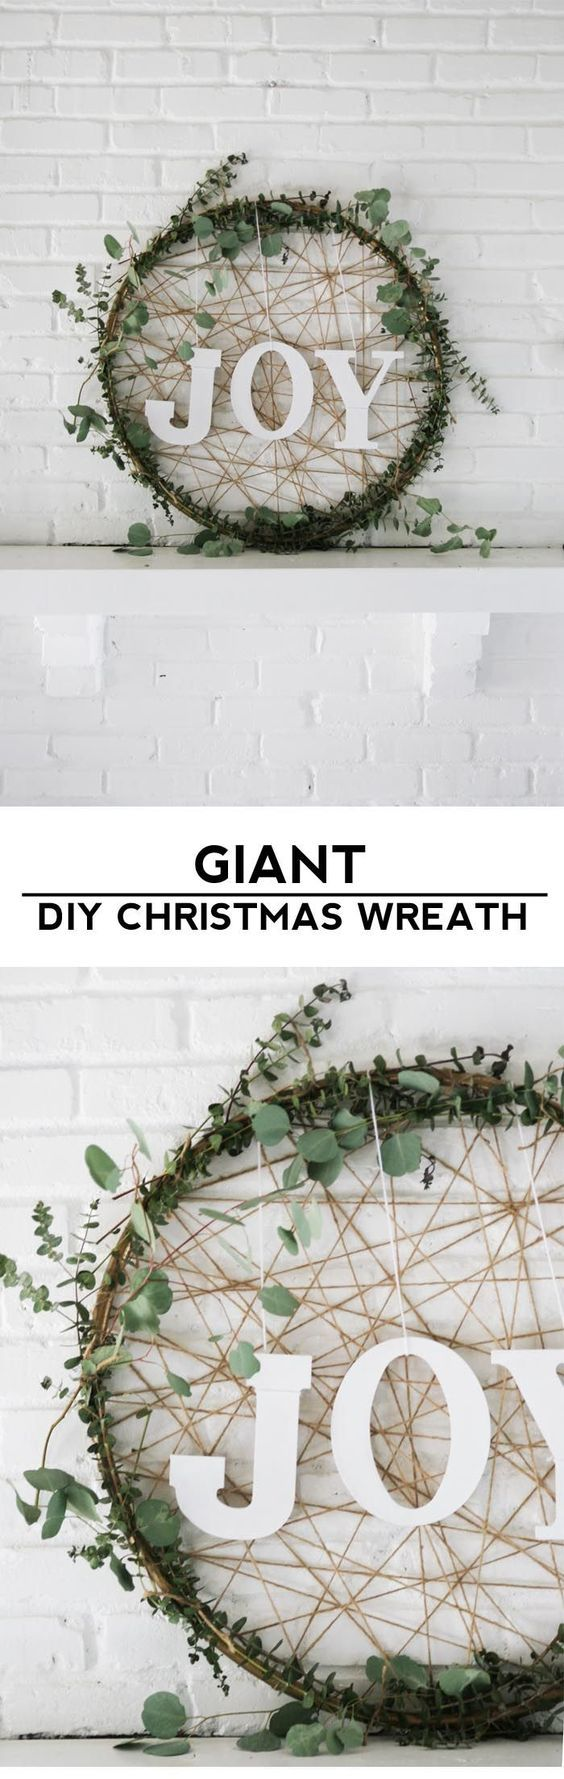 Giant DIY Christmas Wreath | wedding ideas | Pinterest | Modern ...